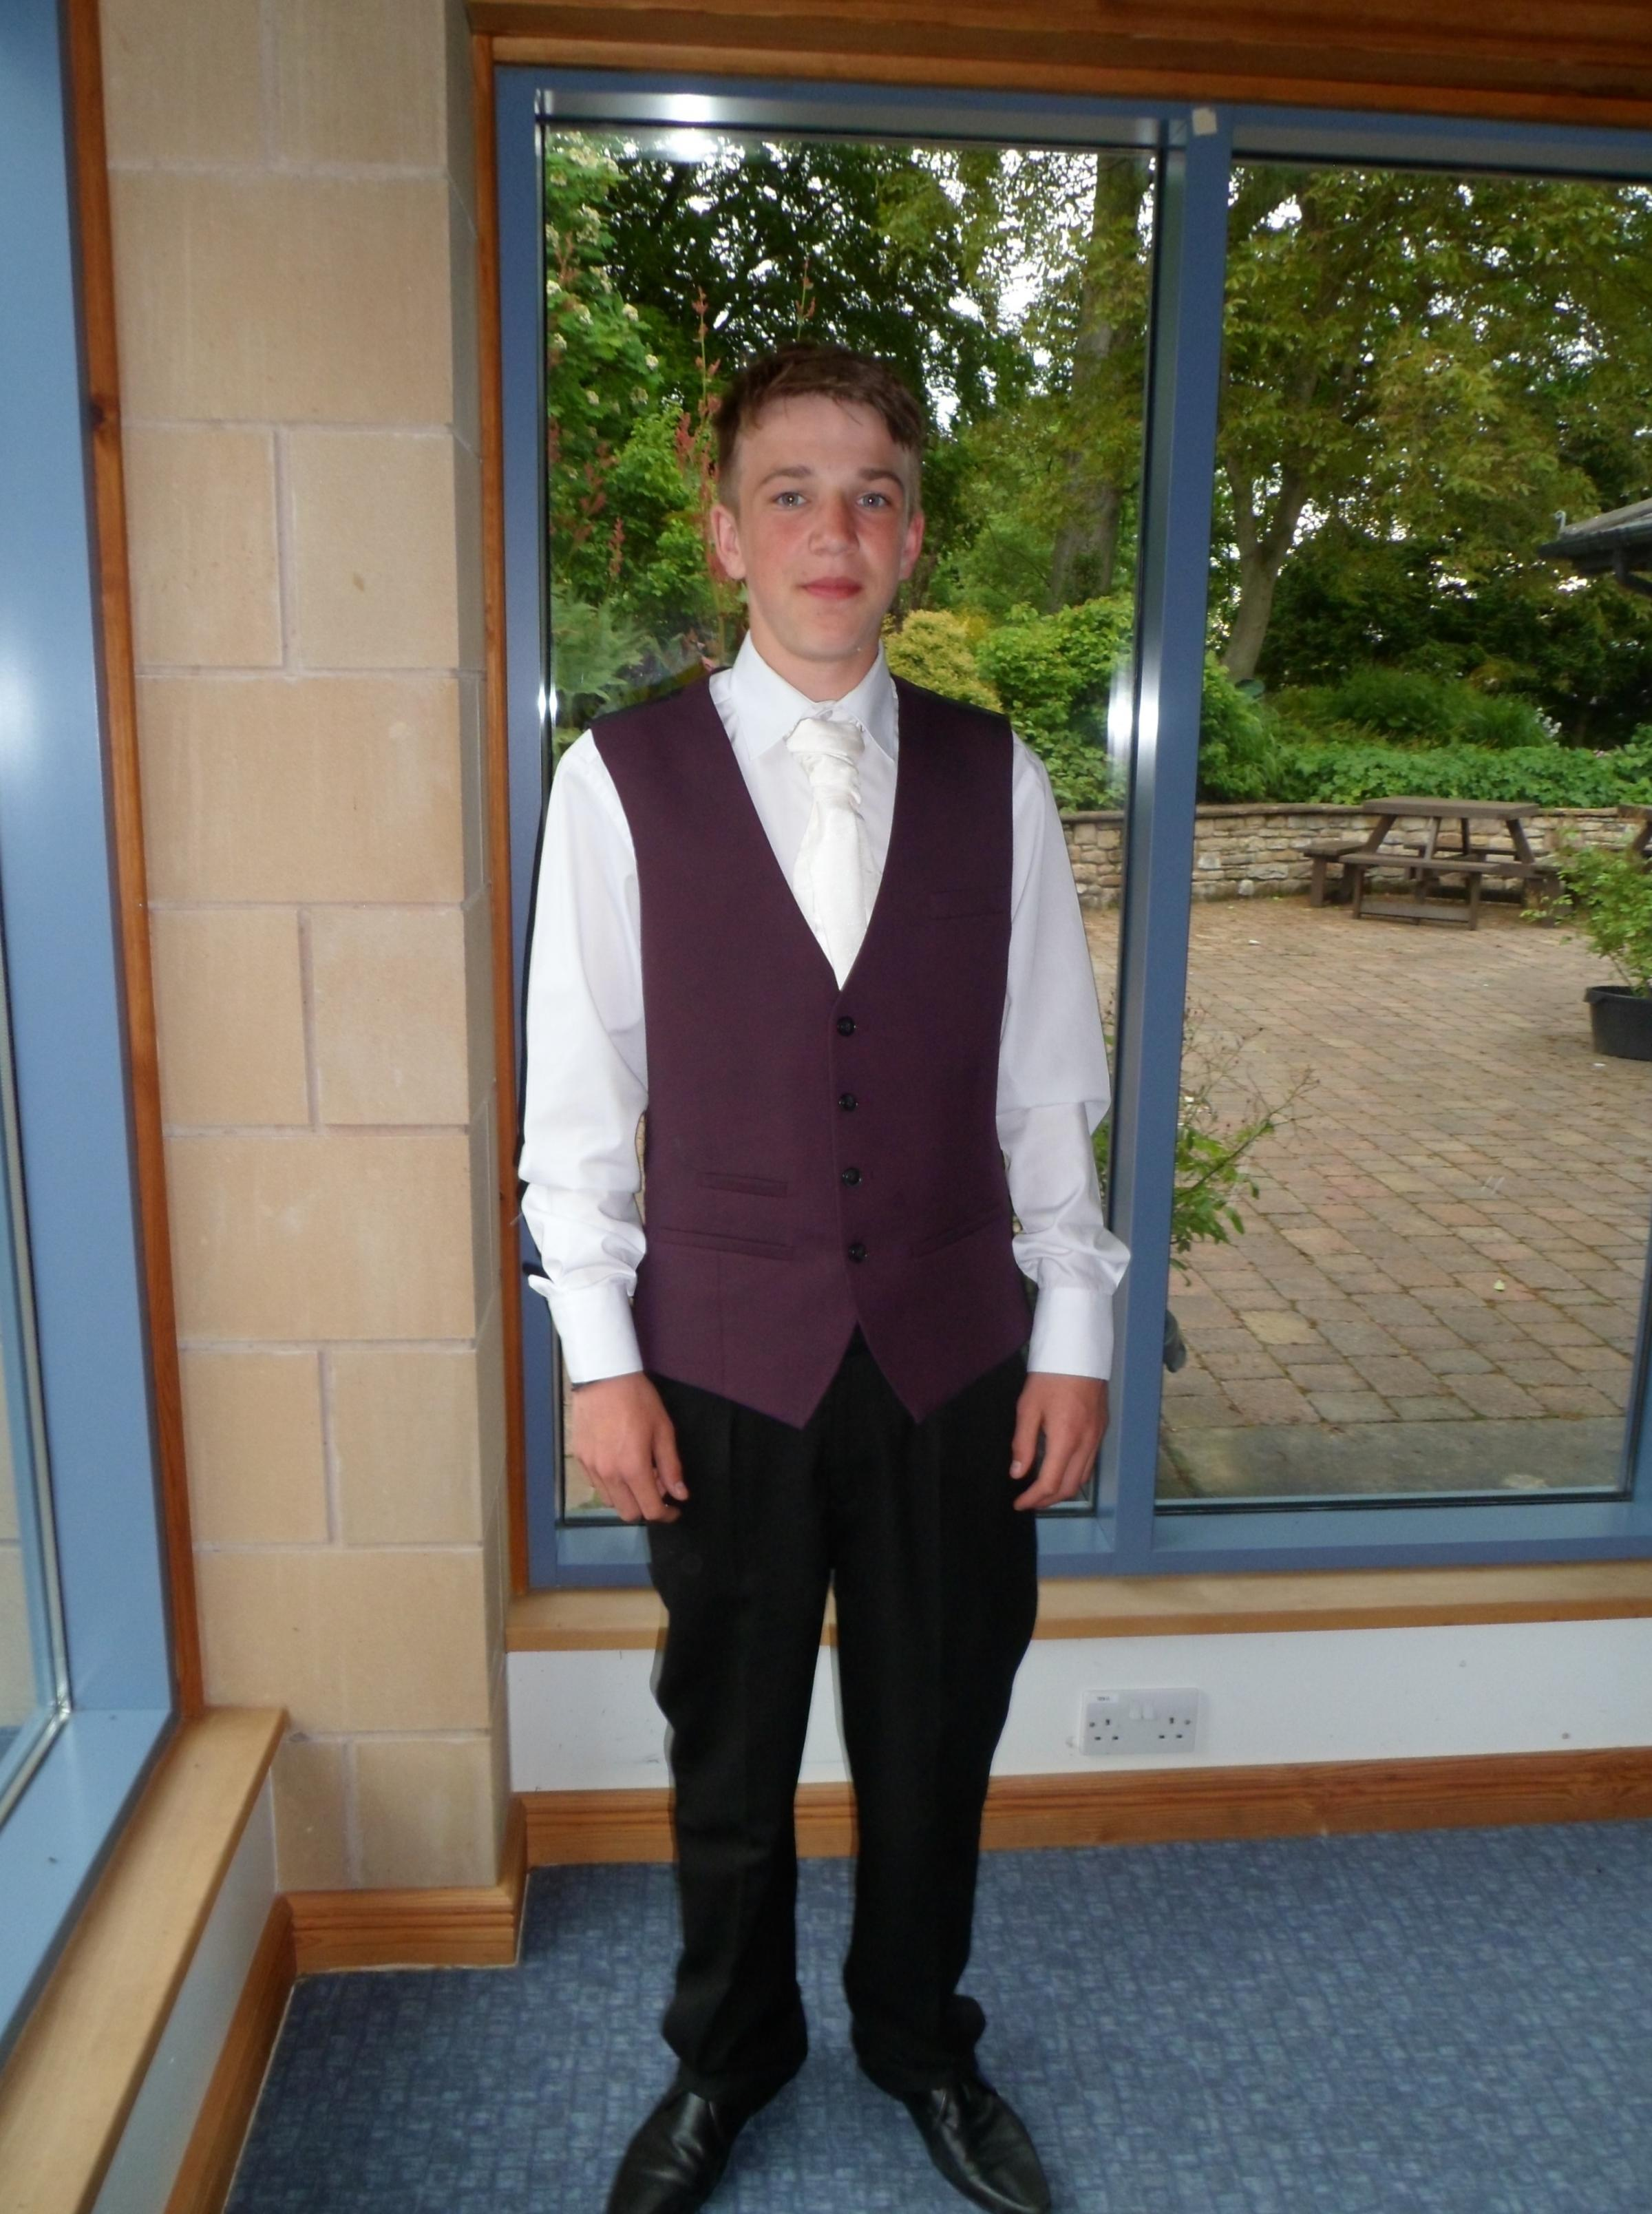 James Goodship, 17, who died in a tragedy at Foulridge reservoir